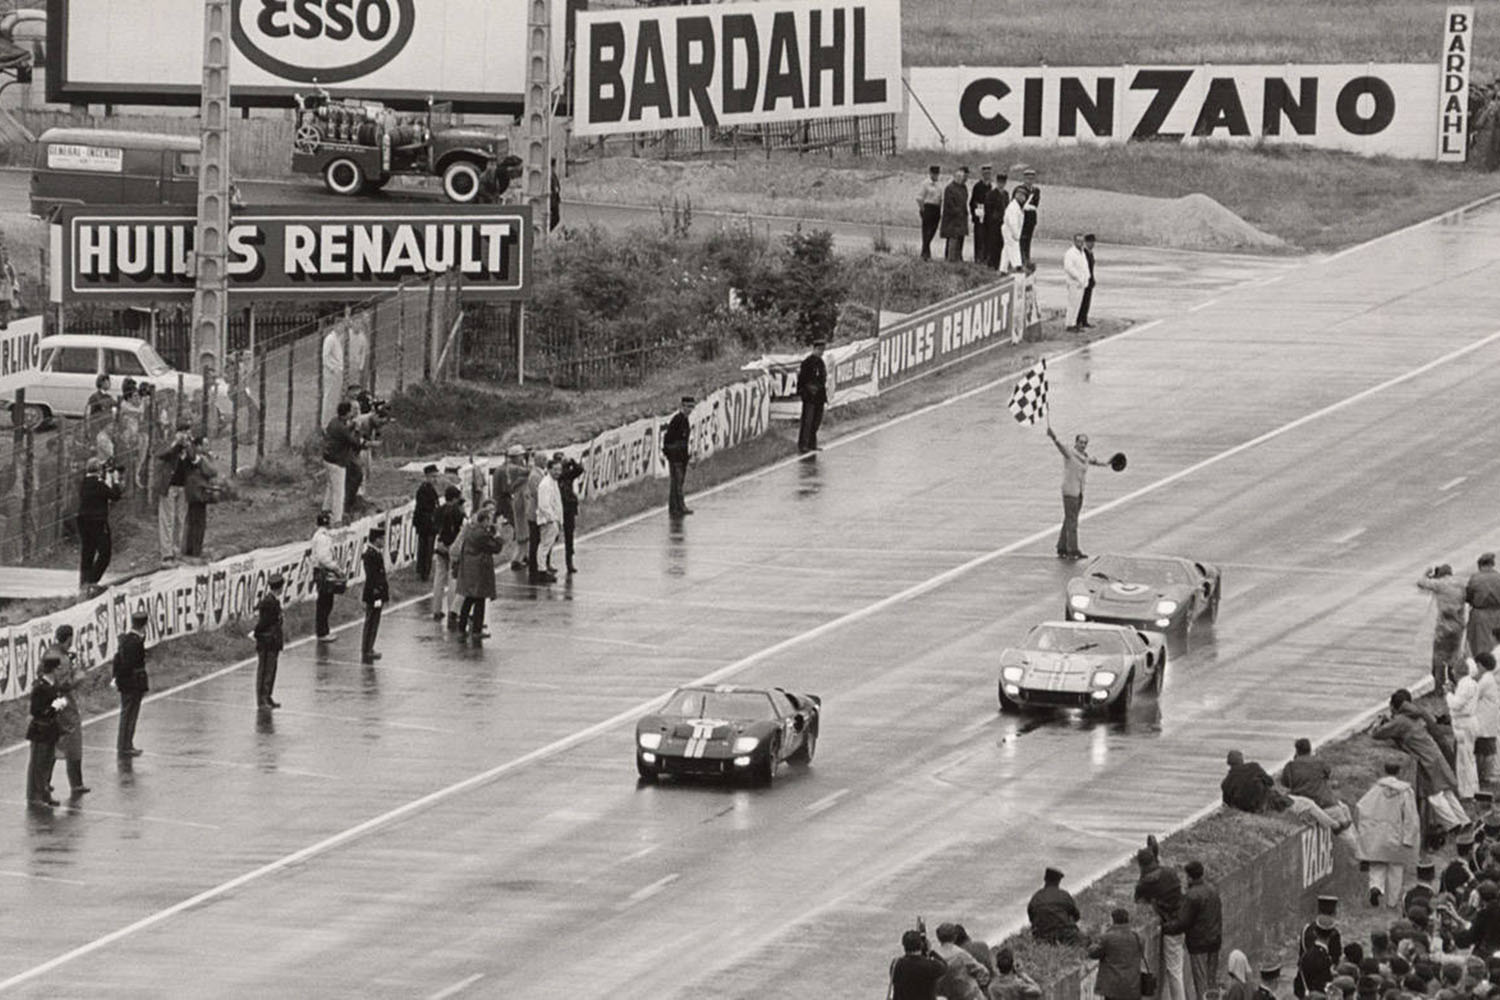 1966_Le_Mans_24_Hours_Ford_GT40_MKII_1_2_3_Finish